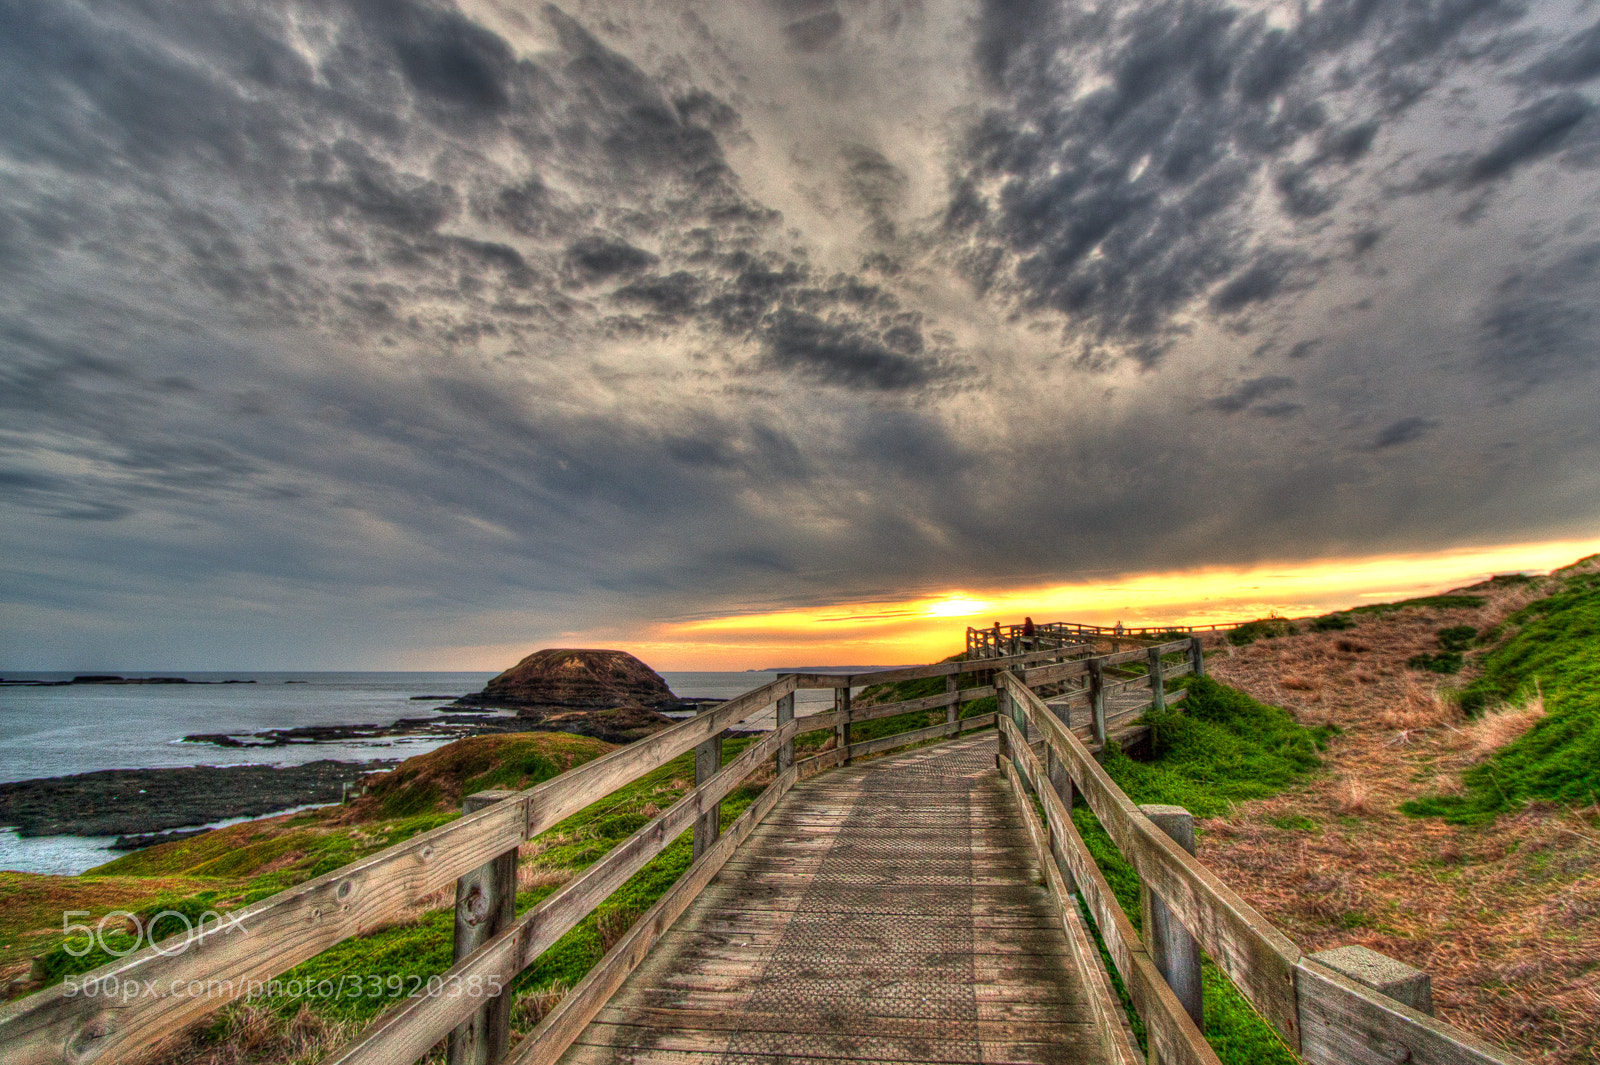 Photograph Journey on! by edmund phung on 500px